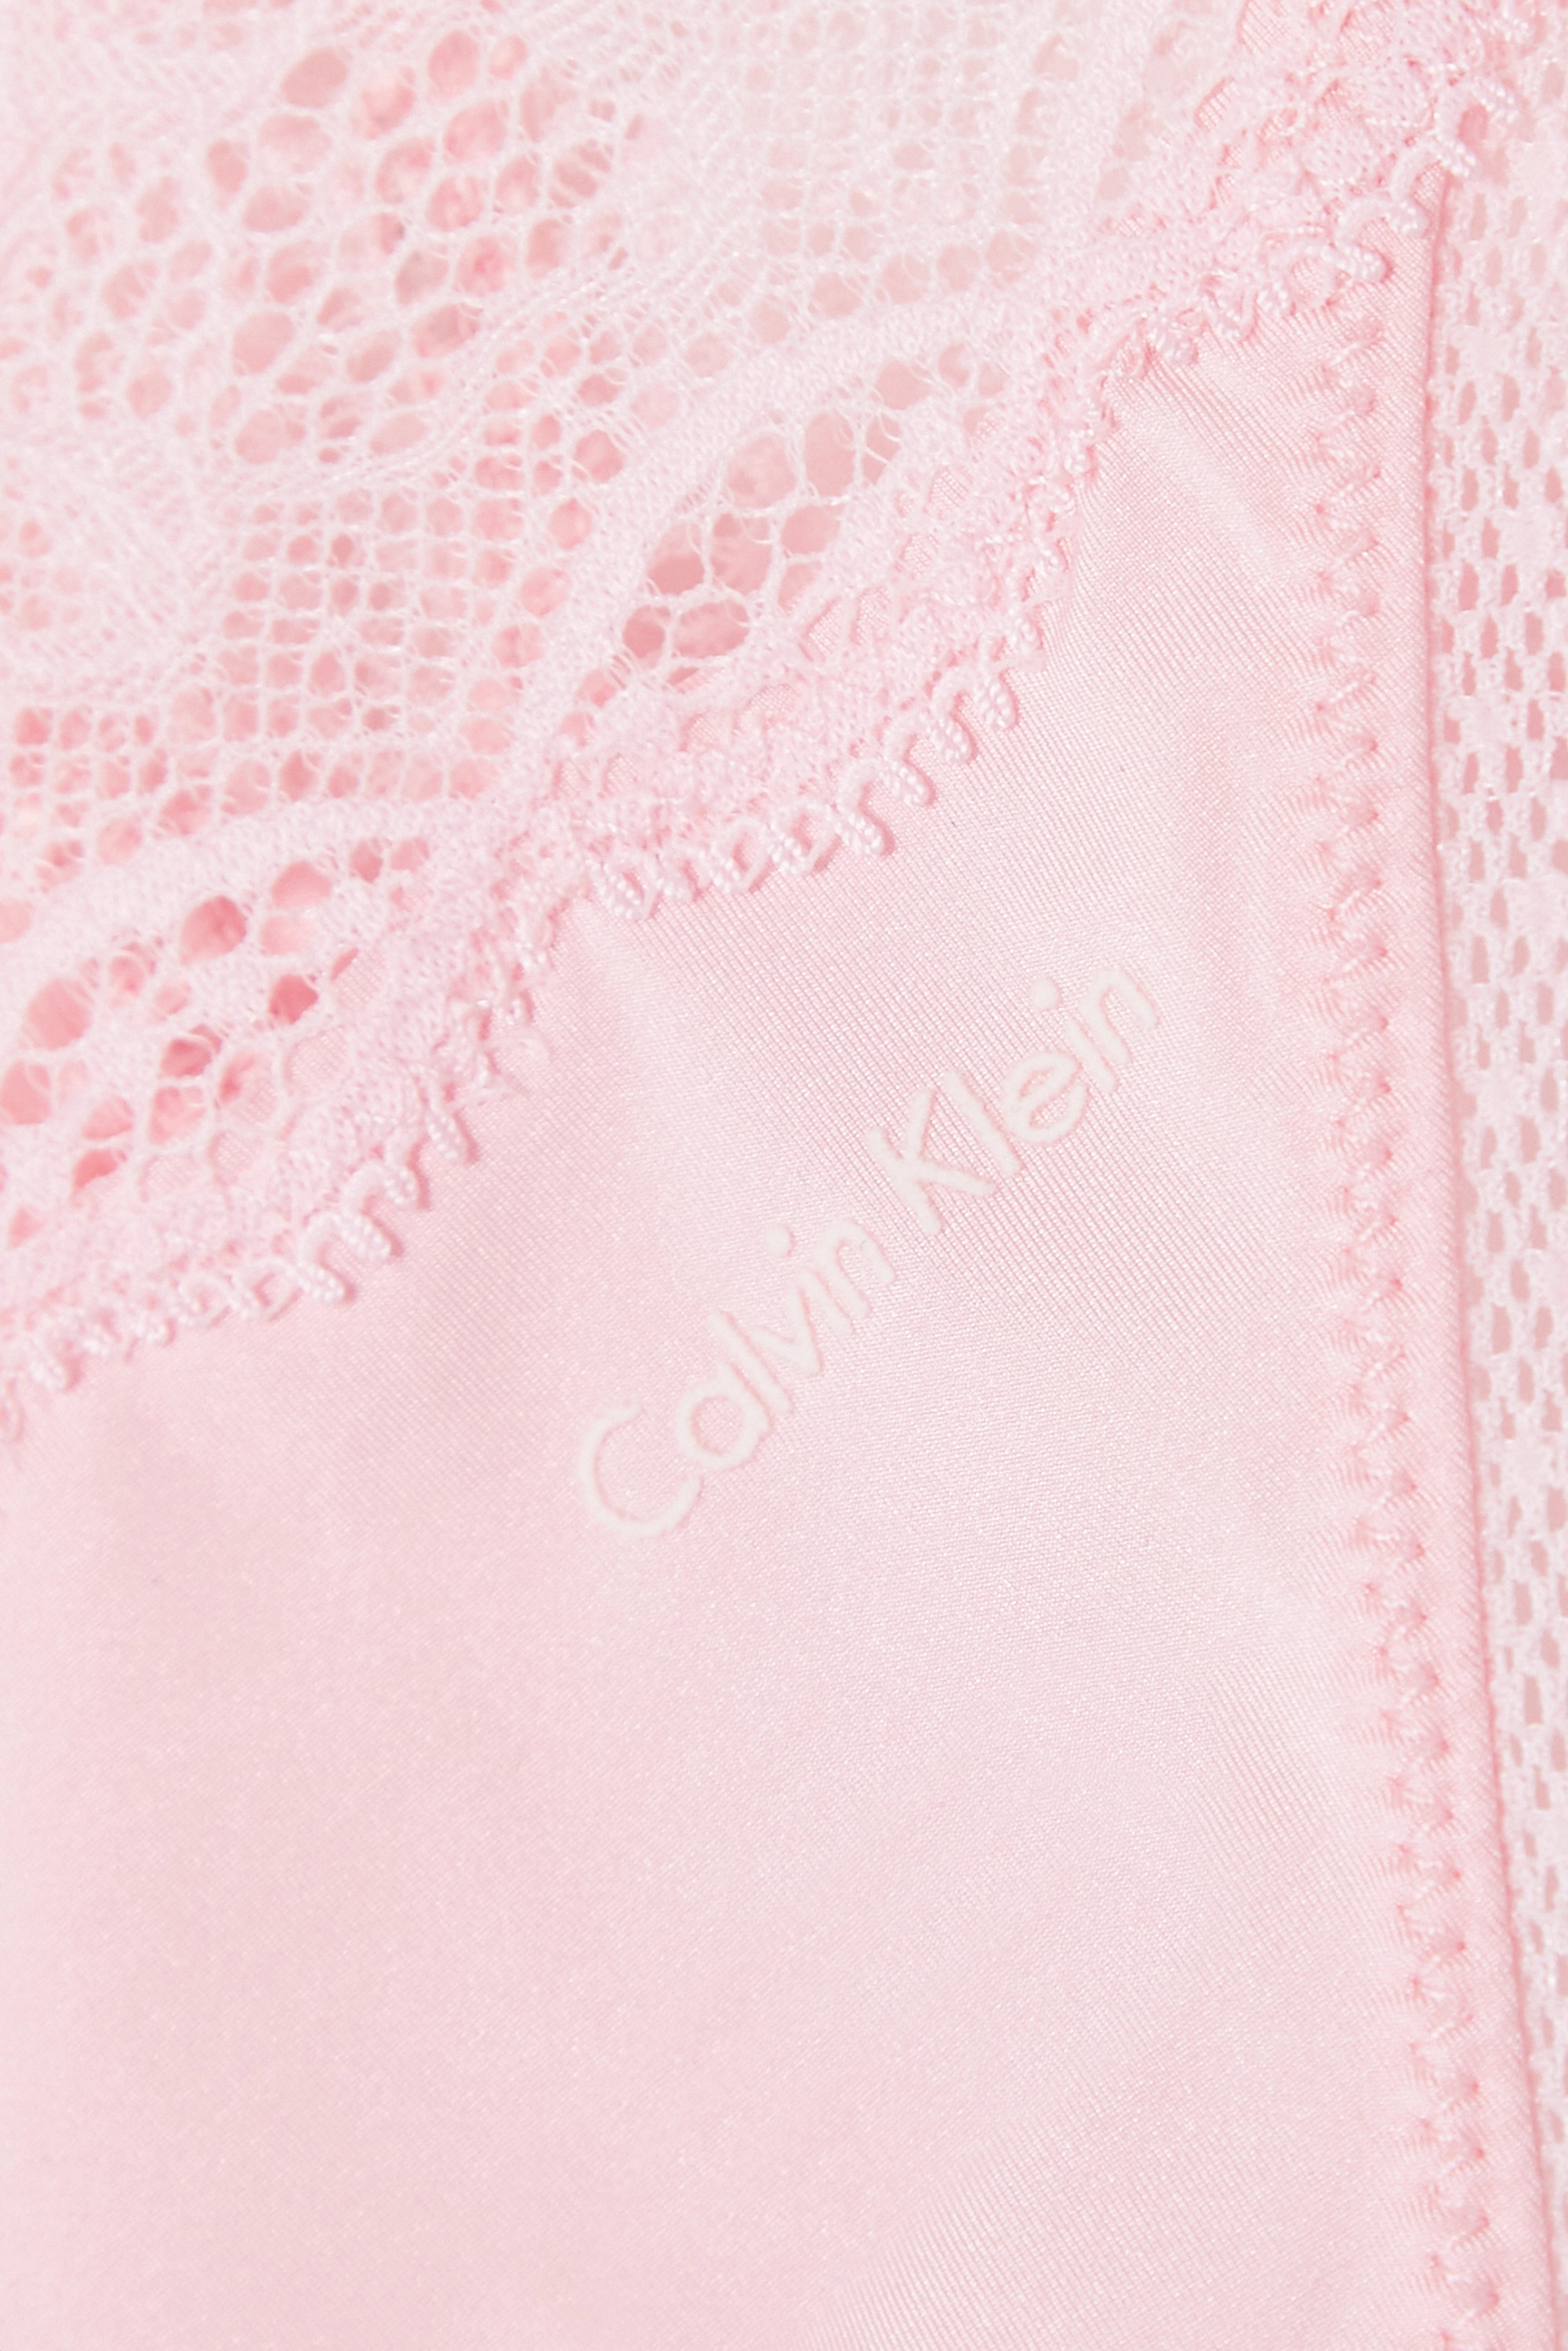 Calvin Klein Underwear Seductive Comfort stretch-lace and jersey thong